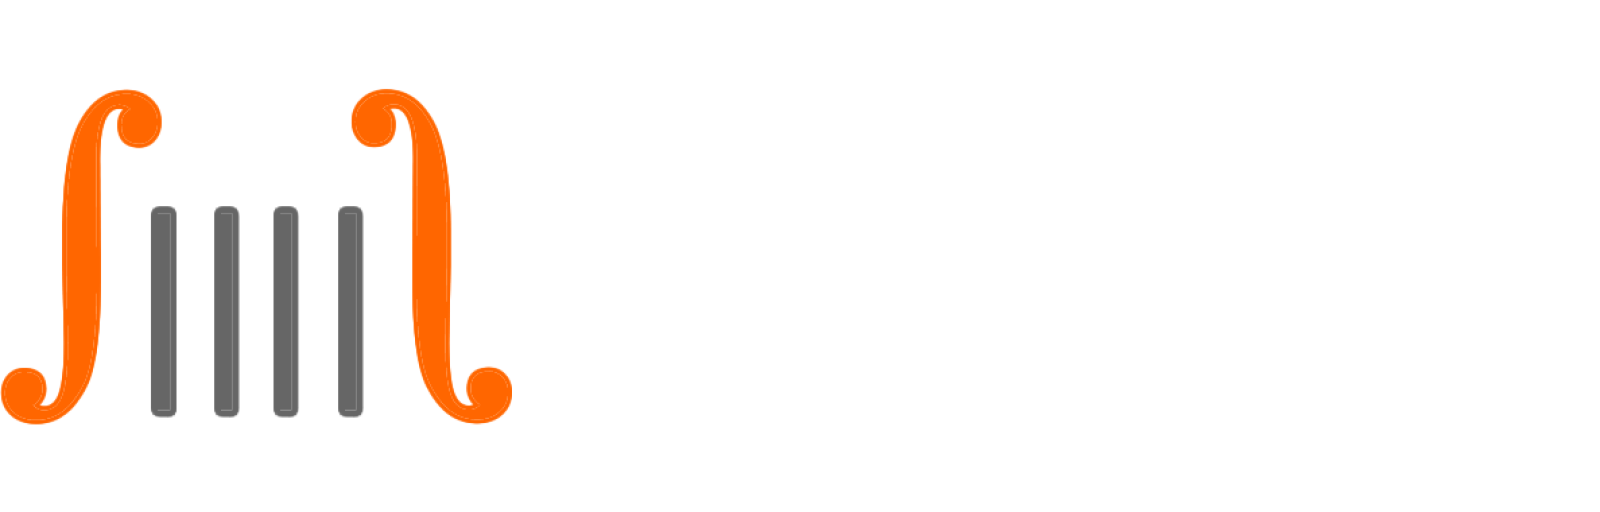 IIDA Masaharu 飯田雅春 Official Website